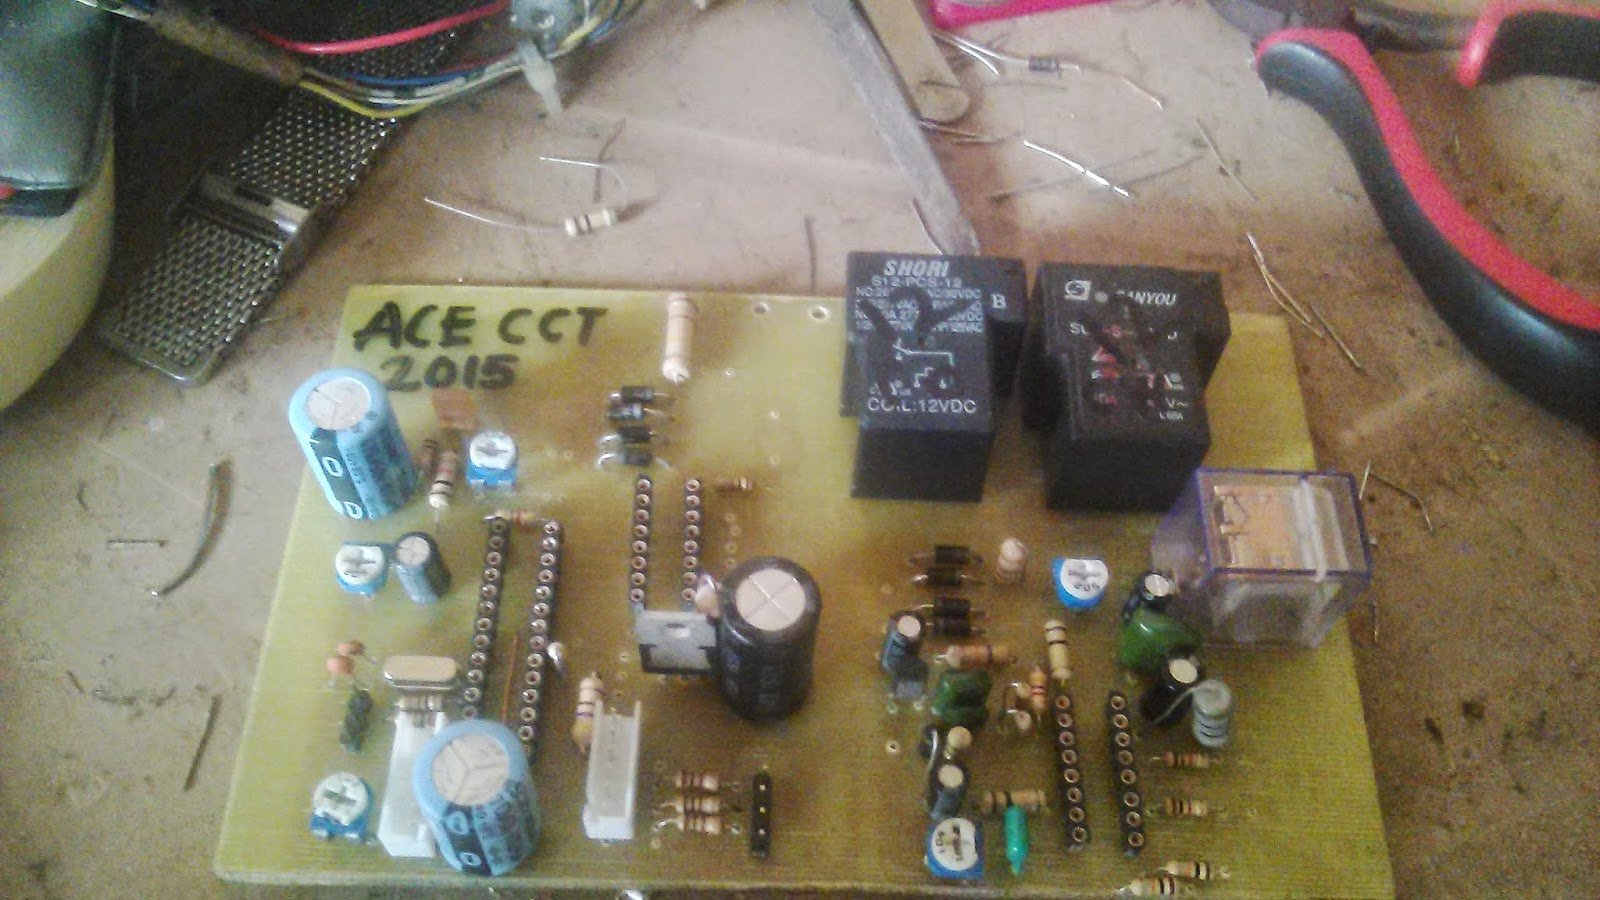 Mcu Based Inverter Control With A V R Using Pic16f876a La1800 Portable Am Fm Radio Circuit Design Electronic Project New 1